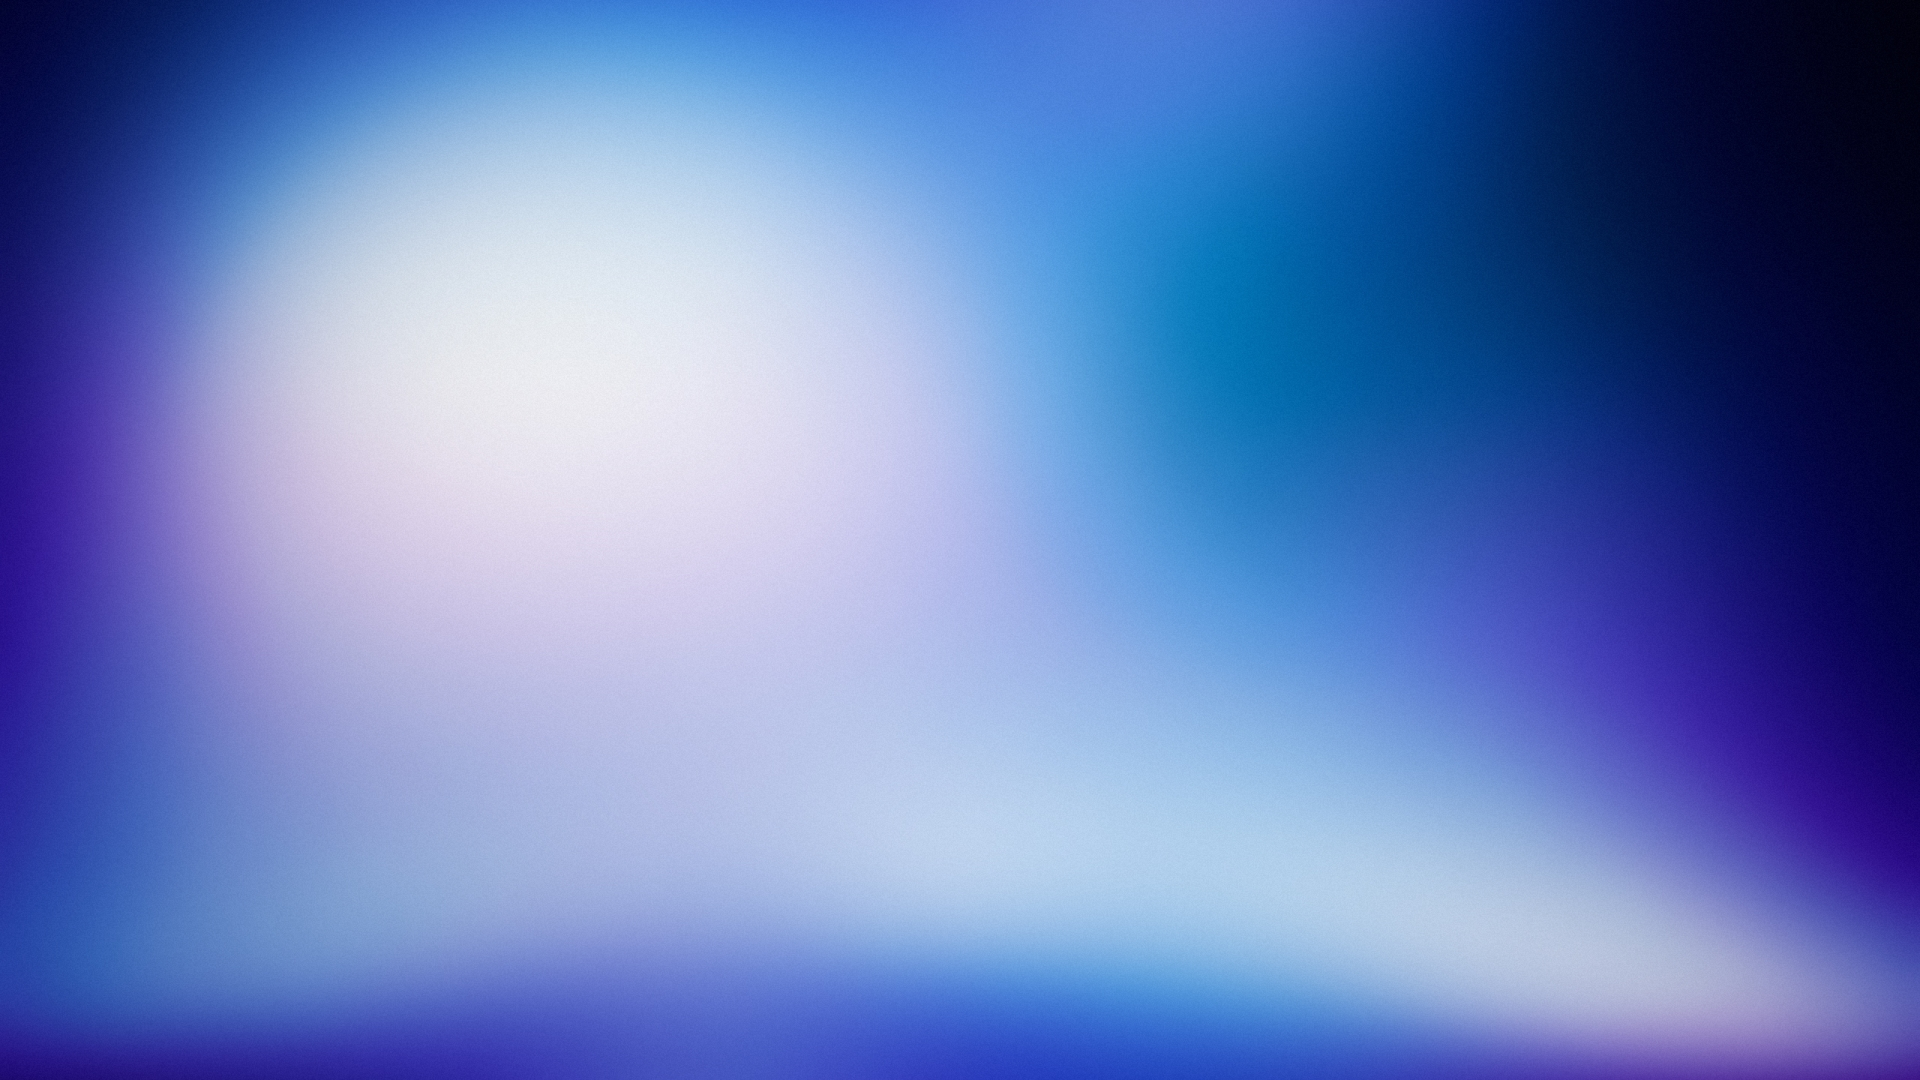 Blue Mist Wallpaper Hd Wallpapers